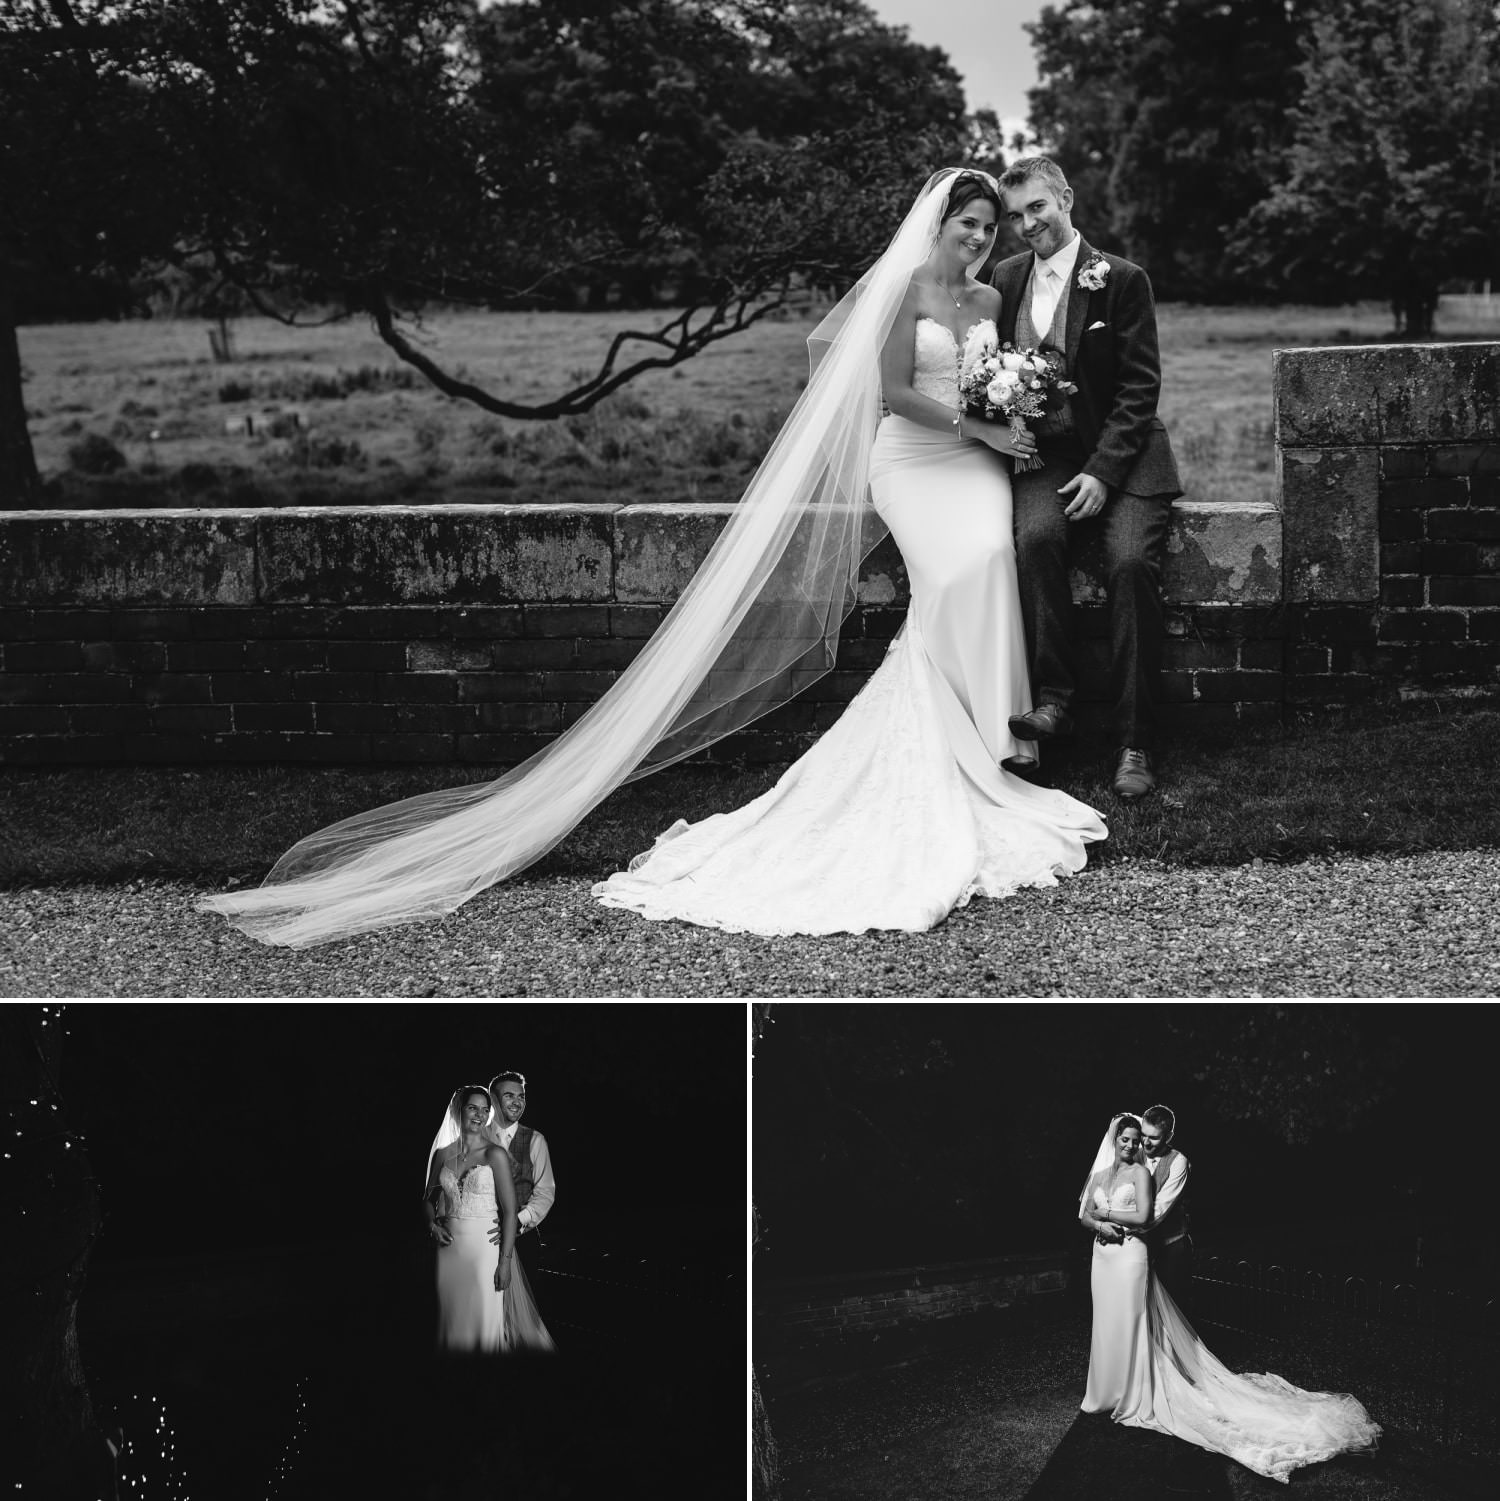 Bridal portrait wedding photography at Iscoyd Park black and white